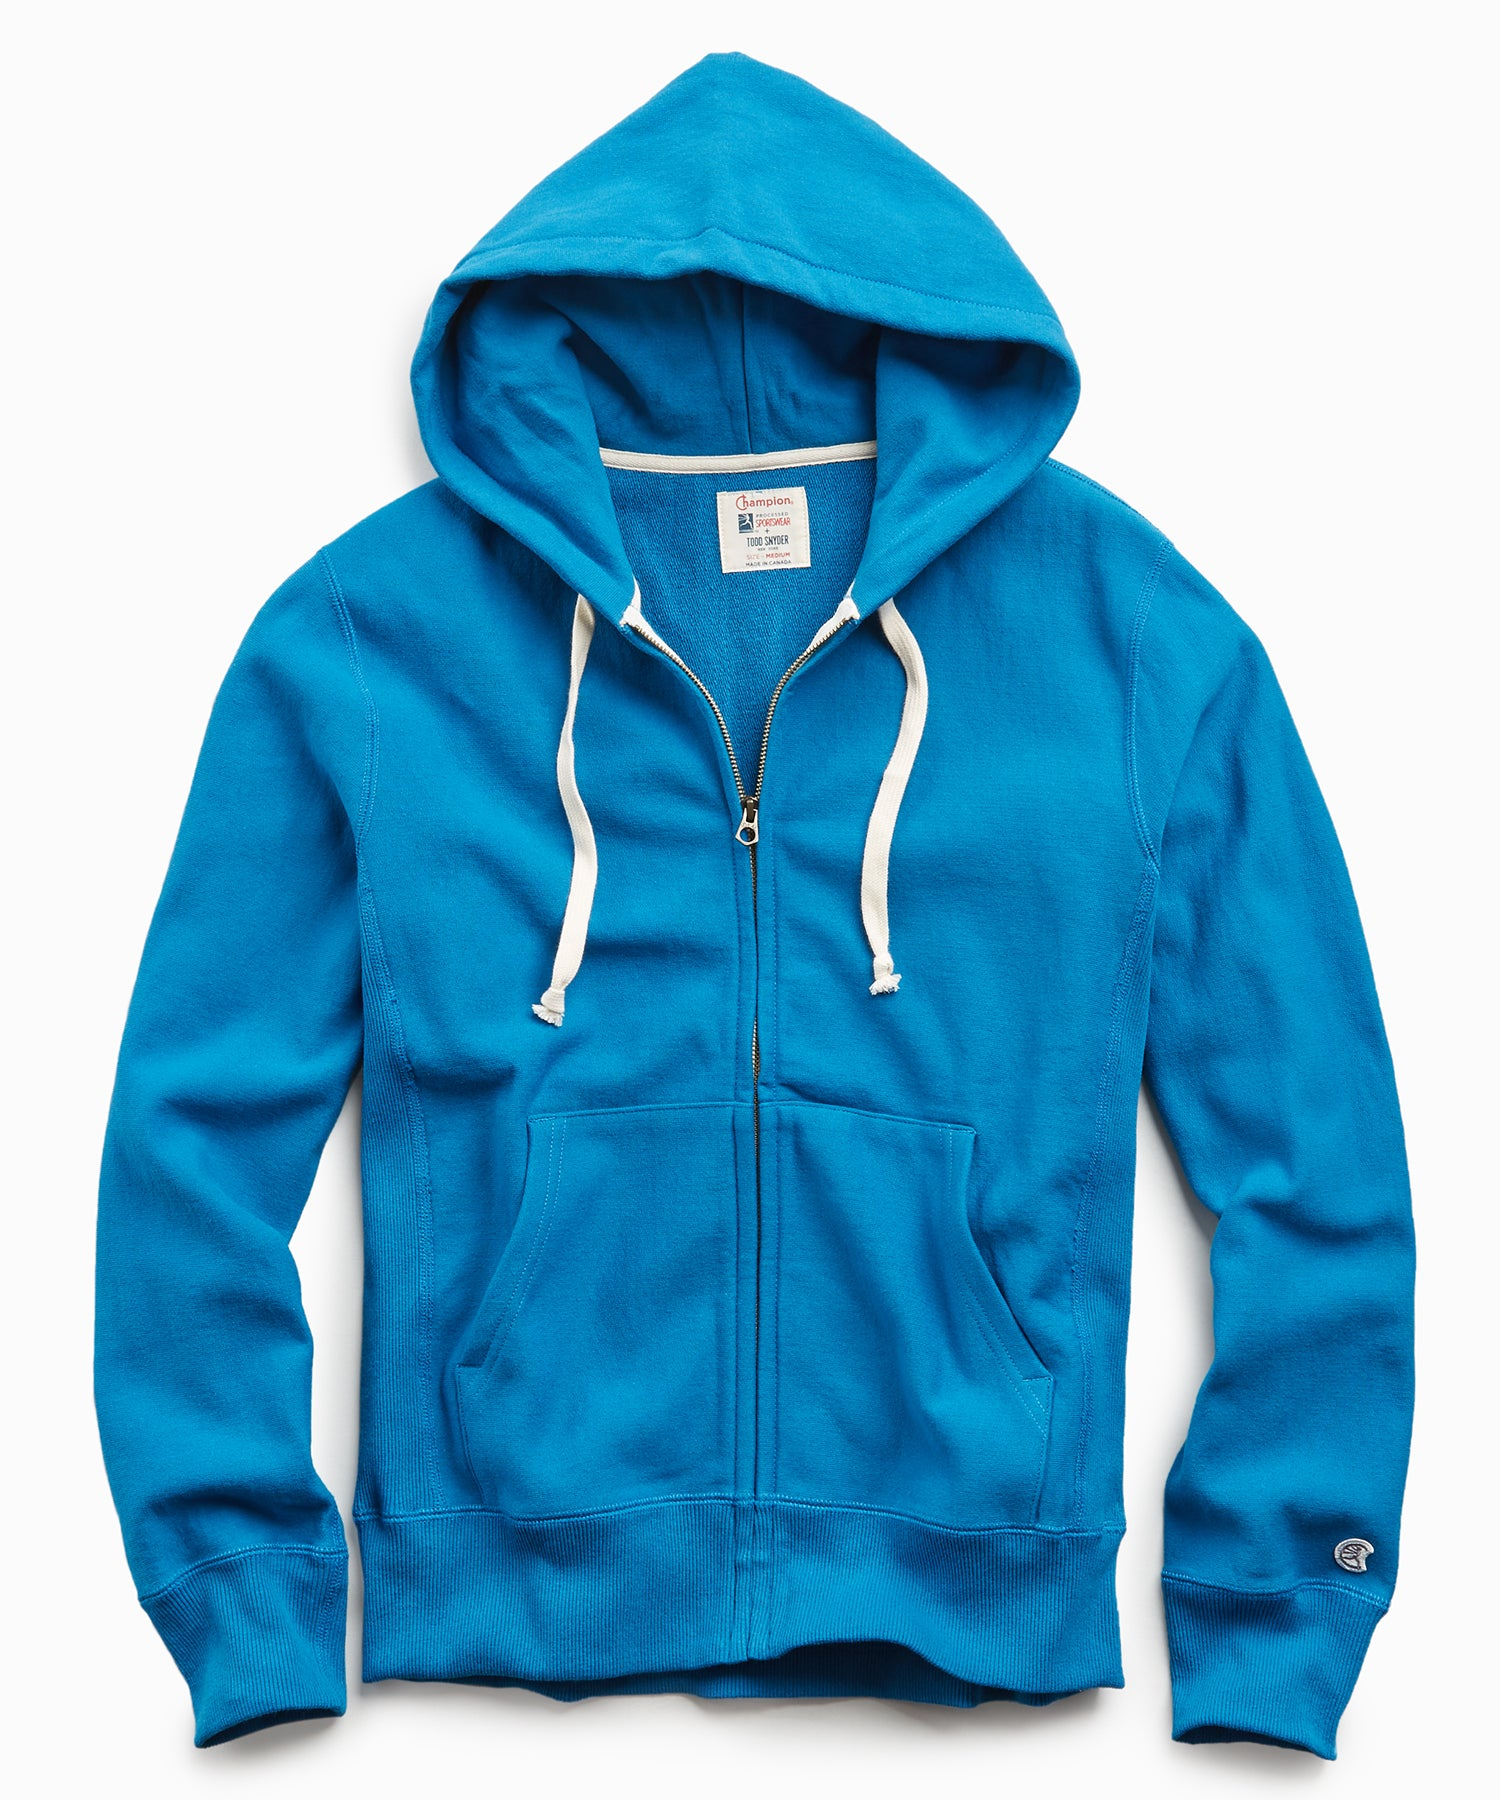 Terry Full Zip Hoodie in Slate Teal